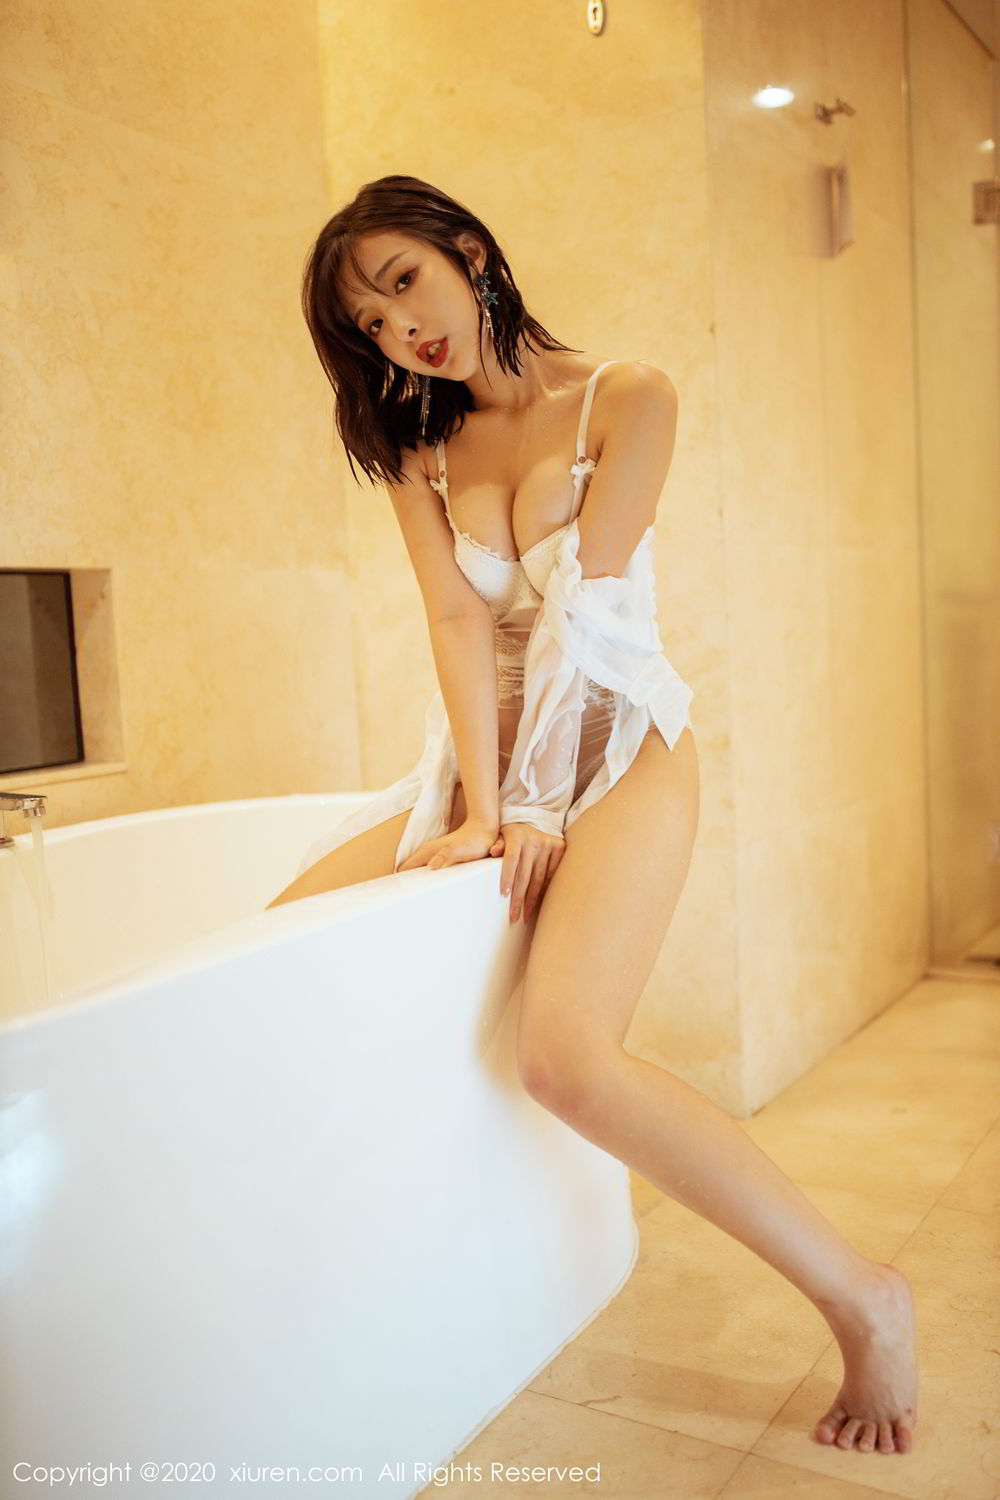 [XiuRen] Vol.2158 Chen Xiao Miao 35P, Bathroom, Chen Xiao Miao, Tall, Wet, Xiuren